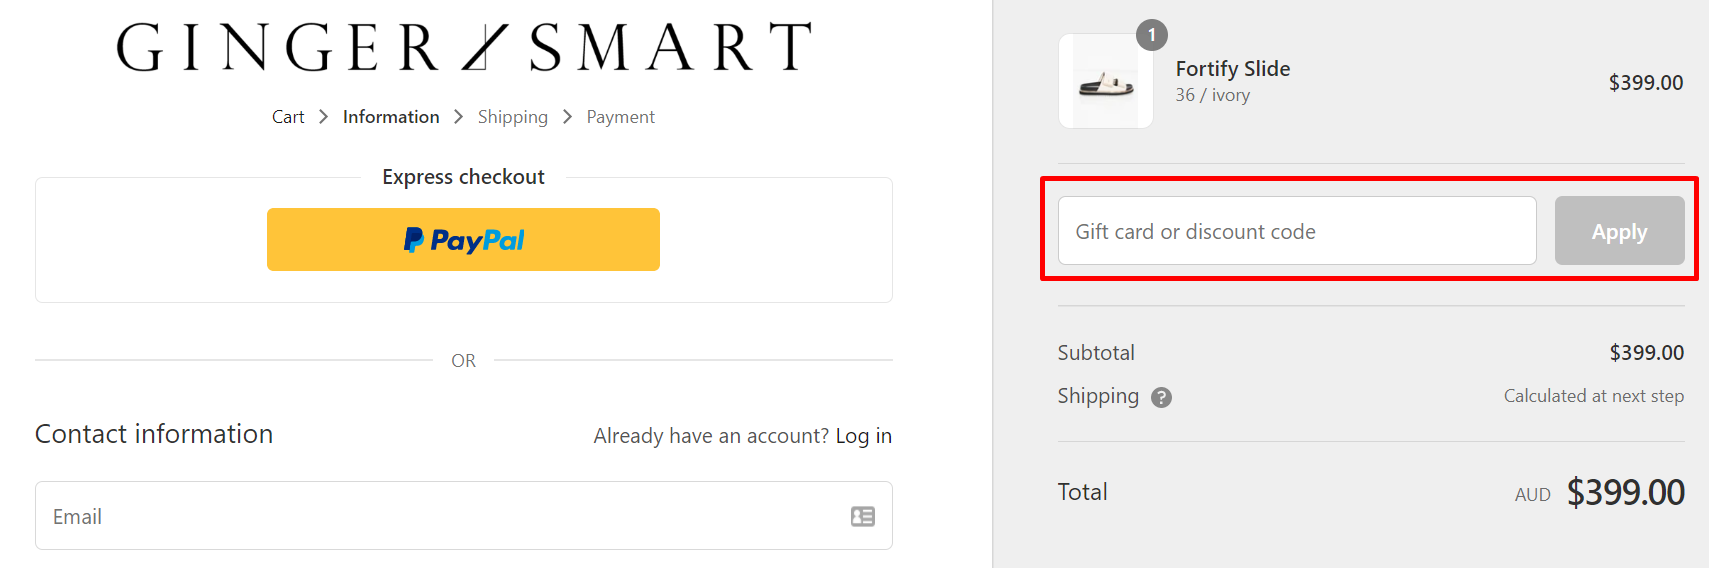 How do I use my GINGER & SMART discount code?